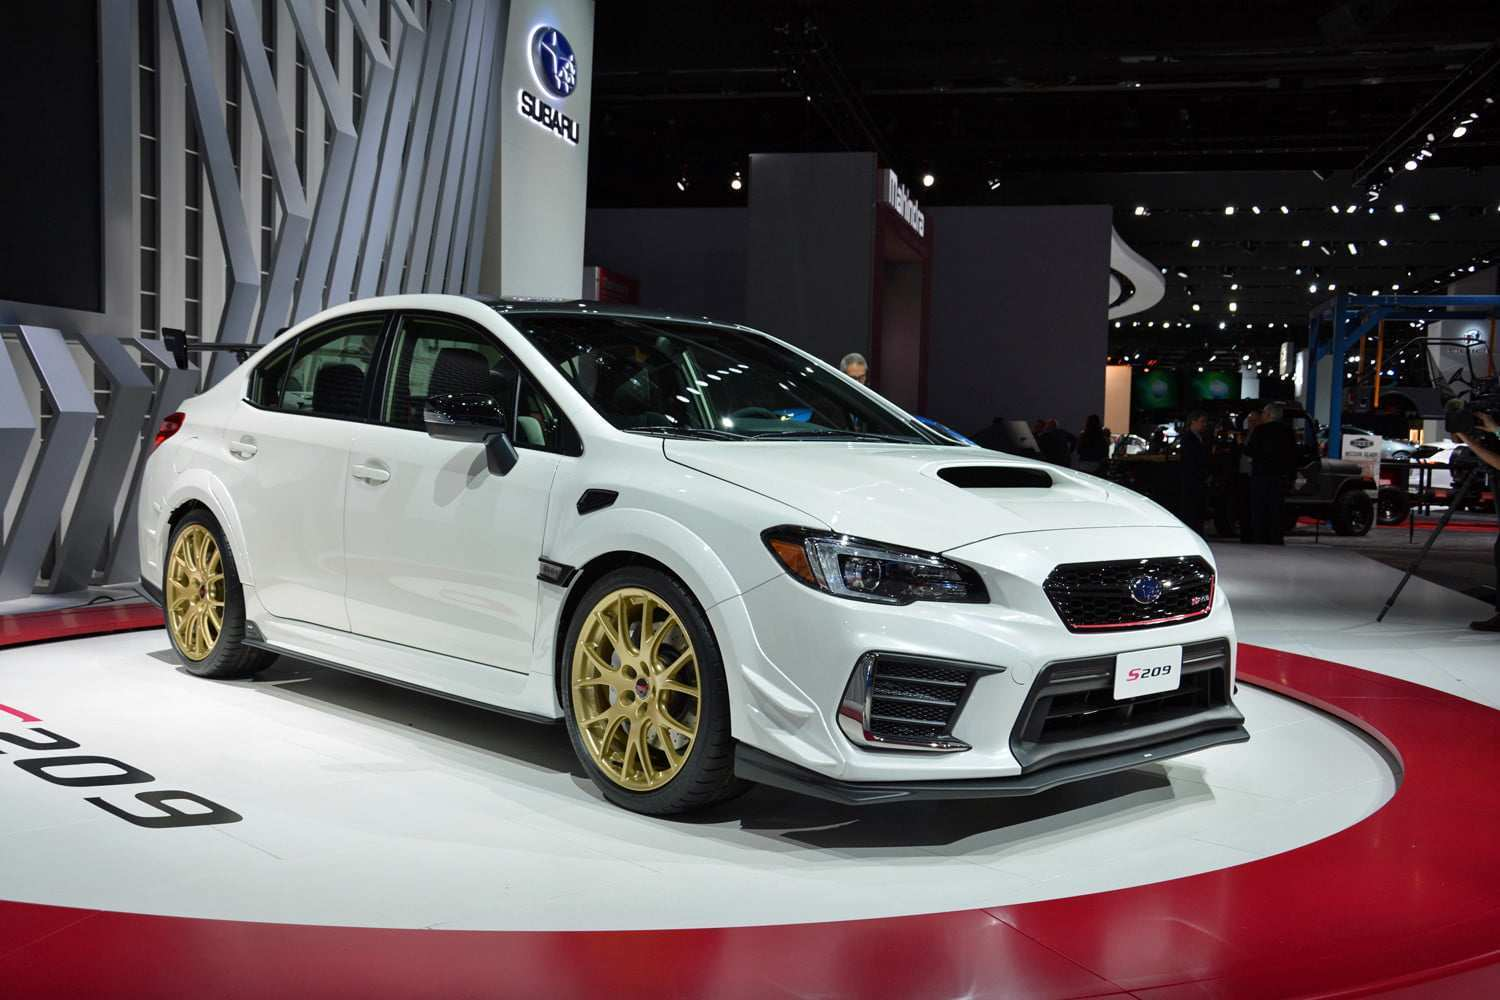 63 Gallery of Sti Subaru 2019 History with Sti Subaru 2019